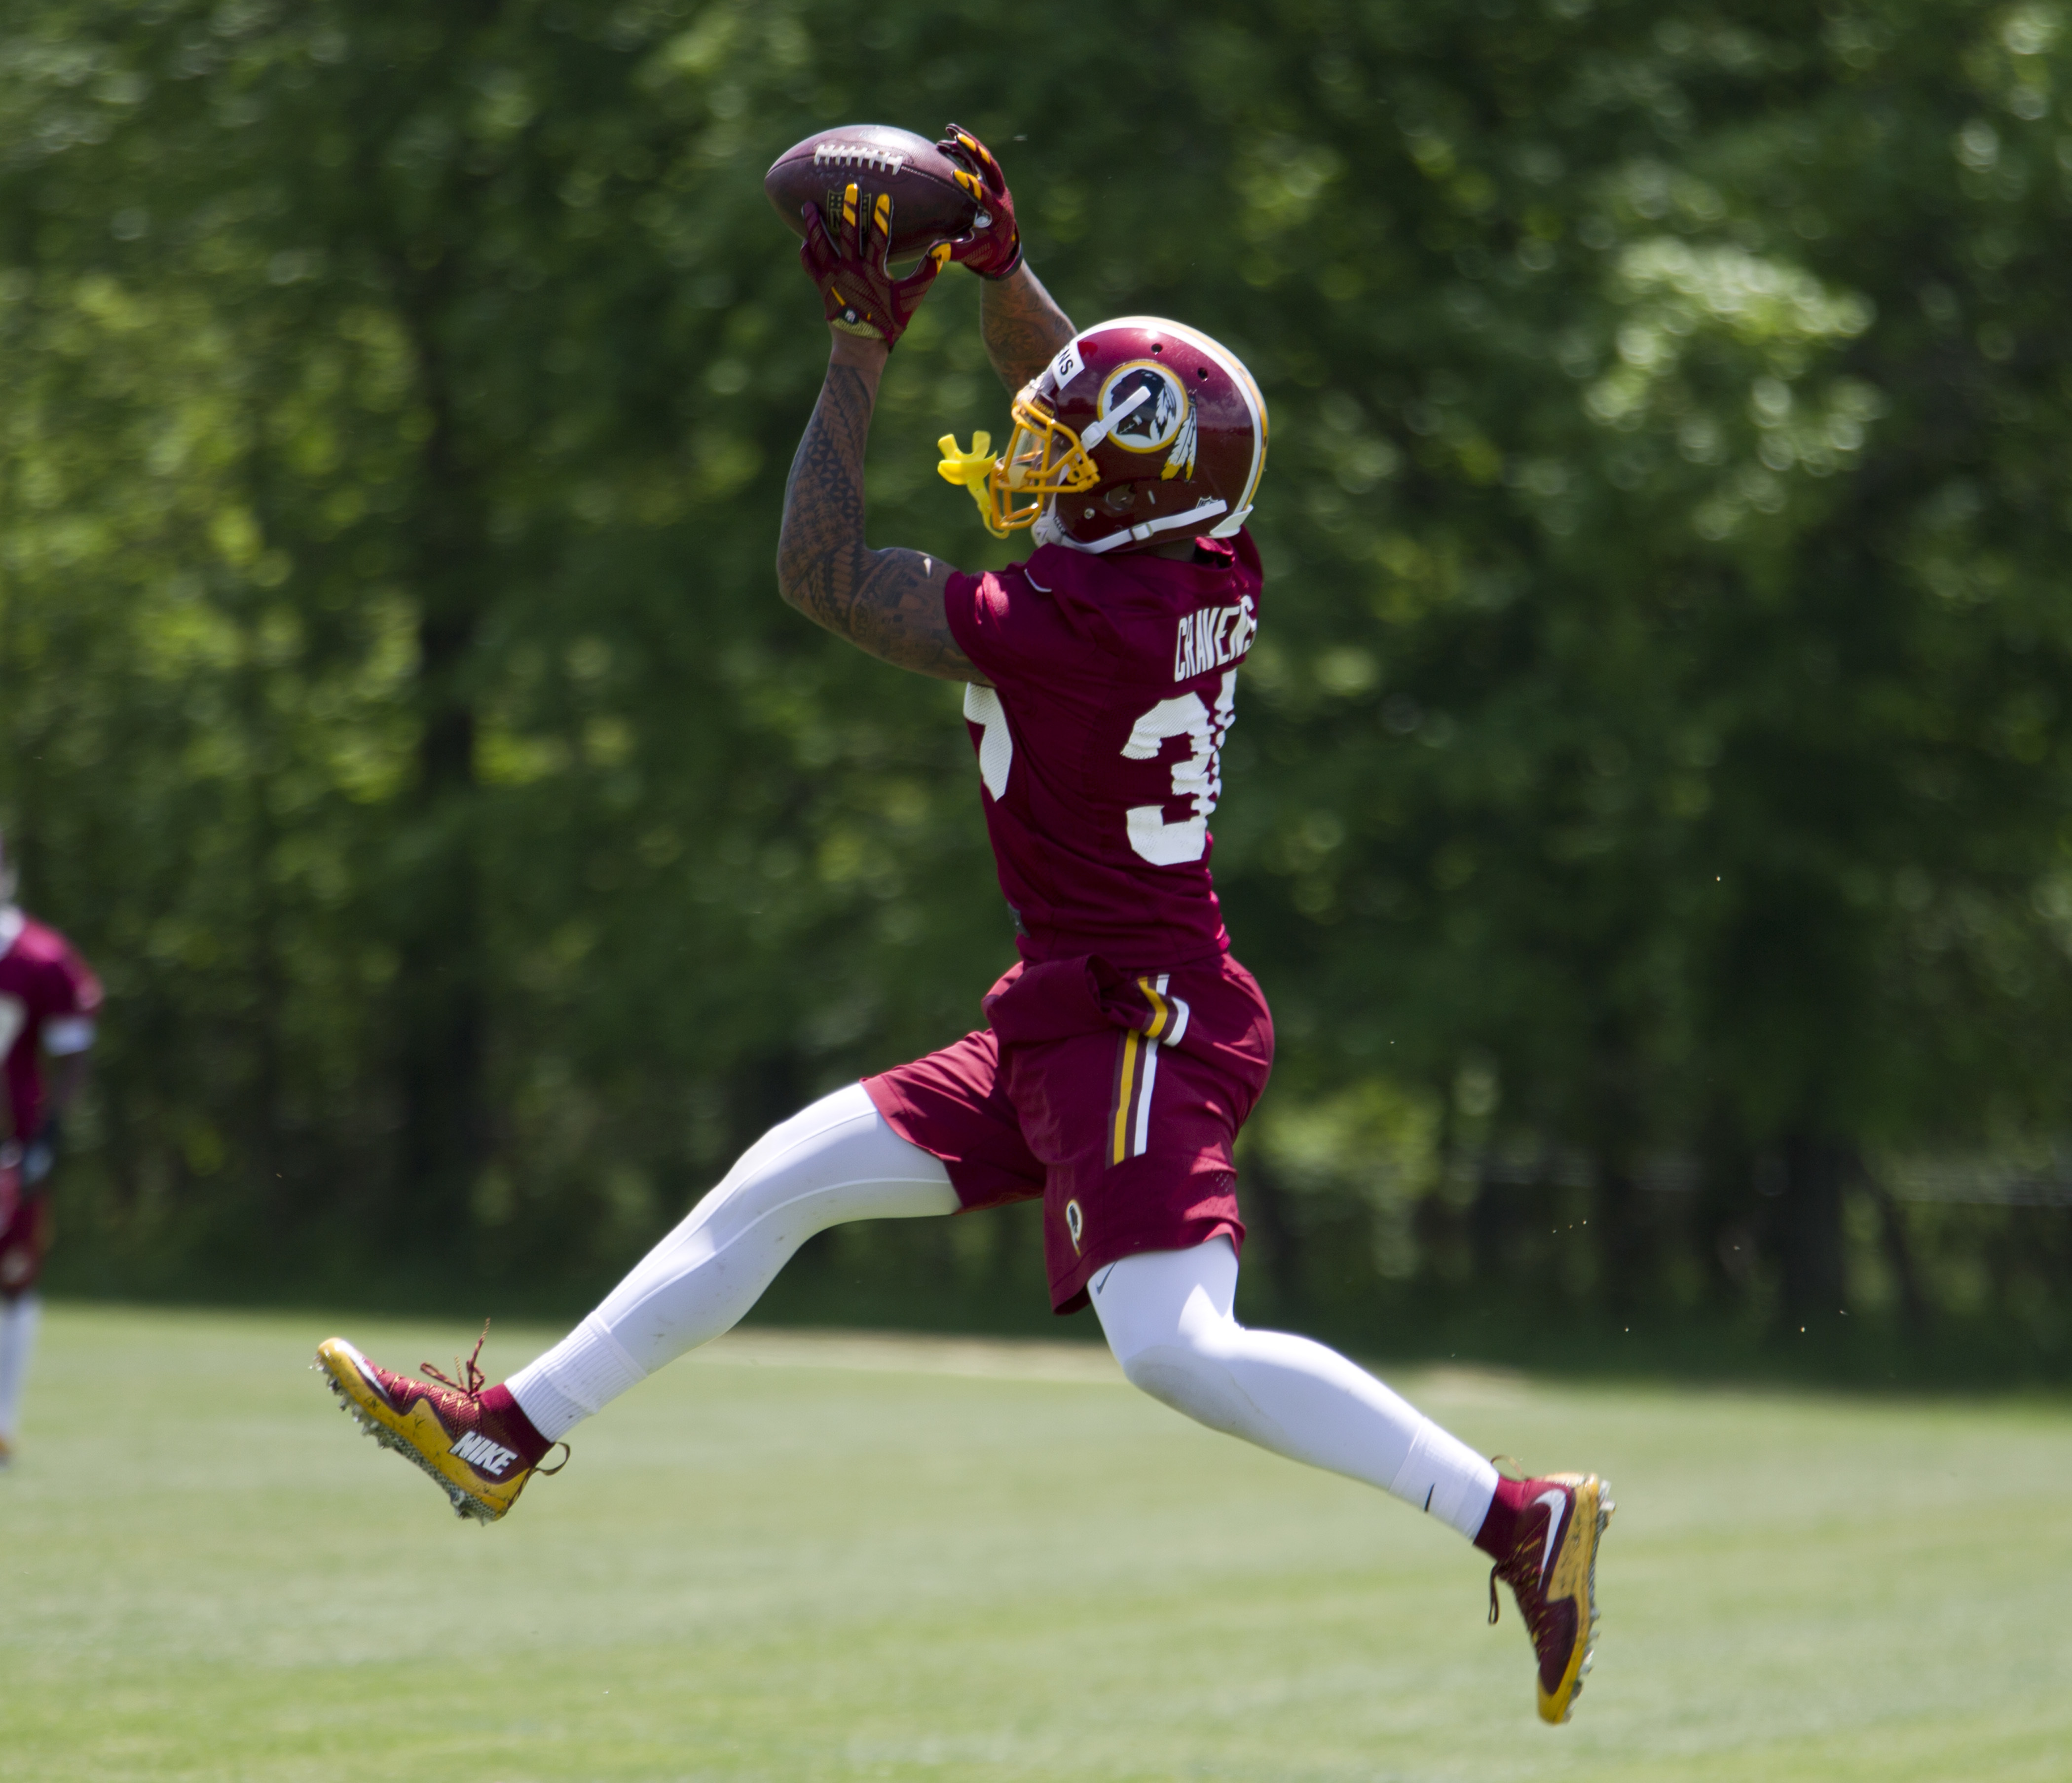 Washington Redskins safety Su'a Cravens, 36, works out during NFL football rookie minicamp Saturday, May 14, 2016, in Ashburn, Va. ( AP Photo/Jose Luis Magana)